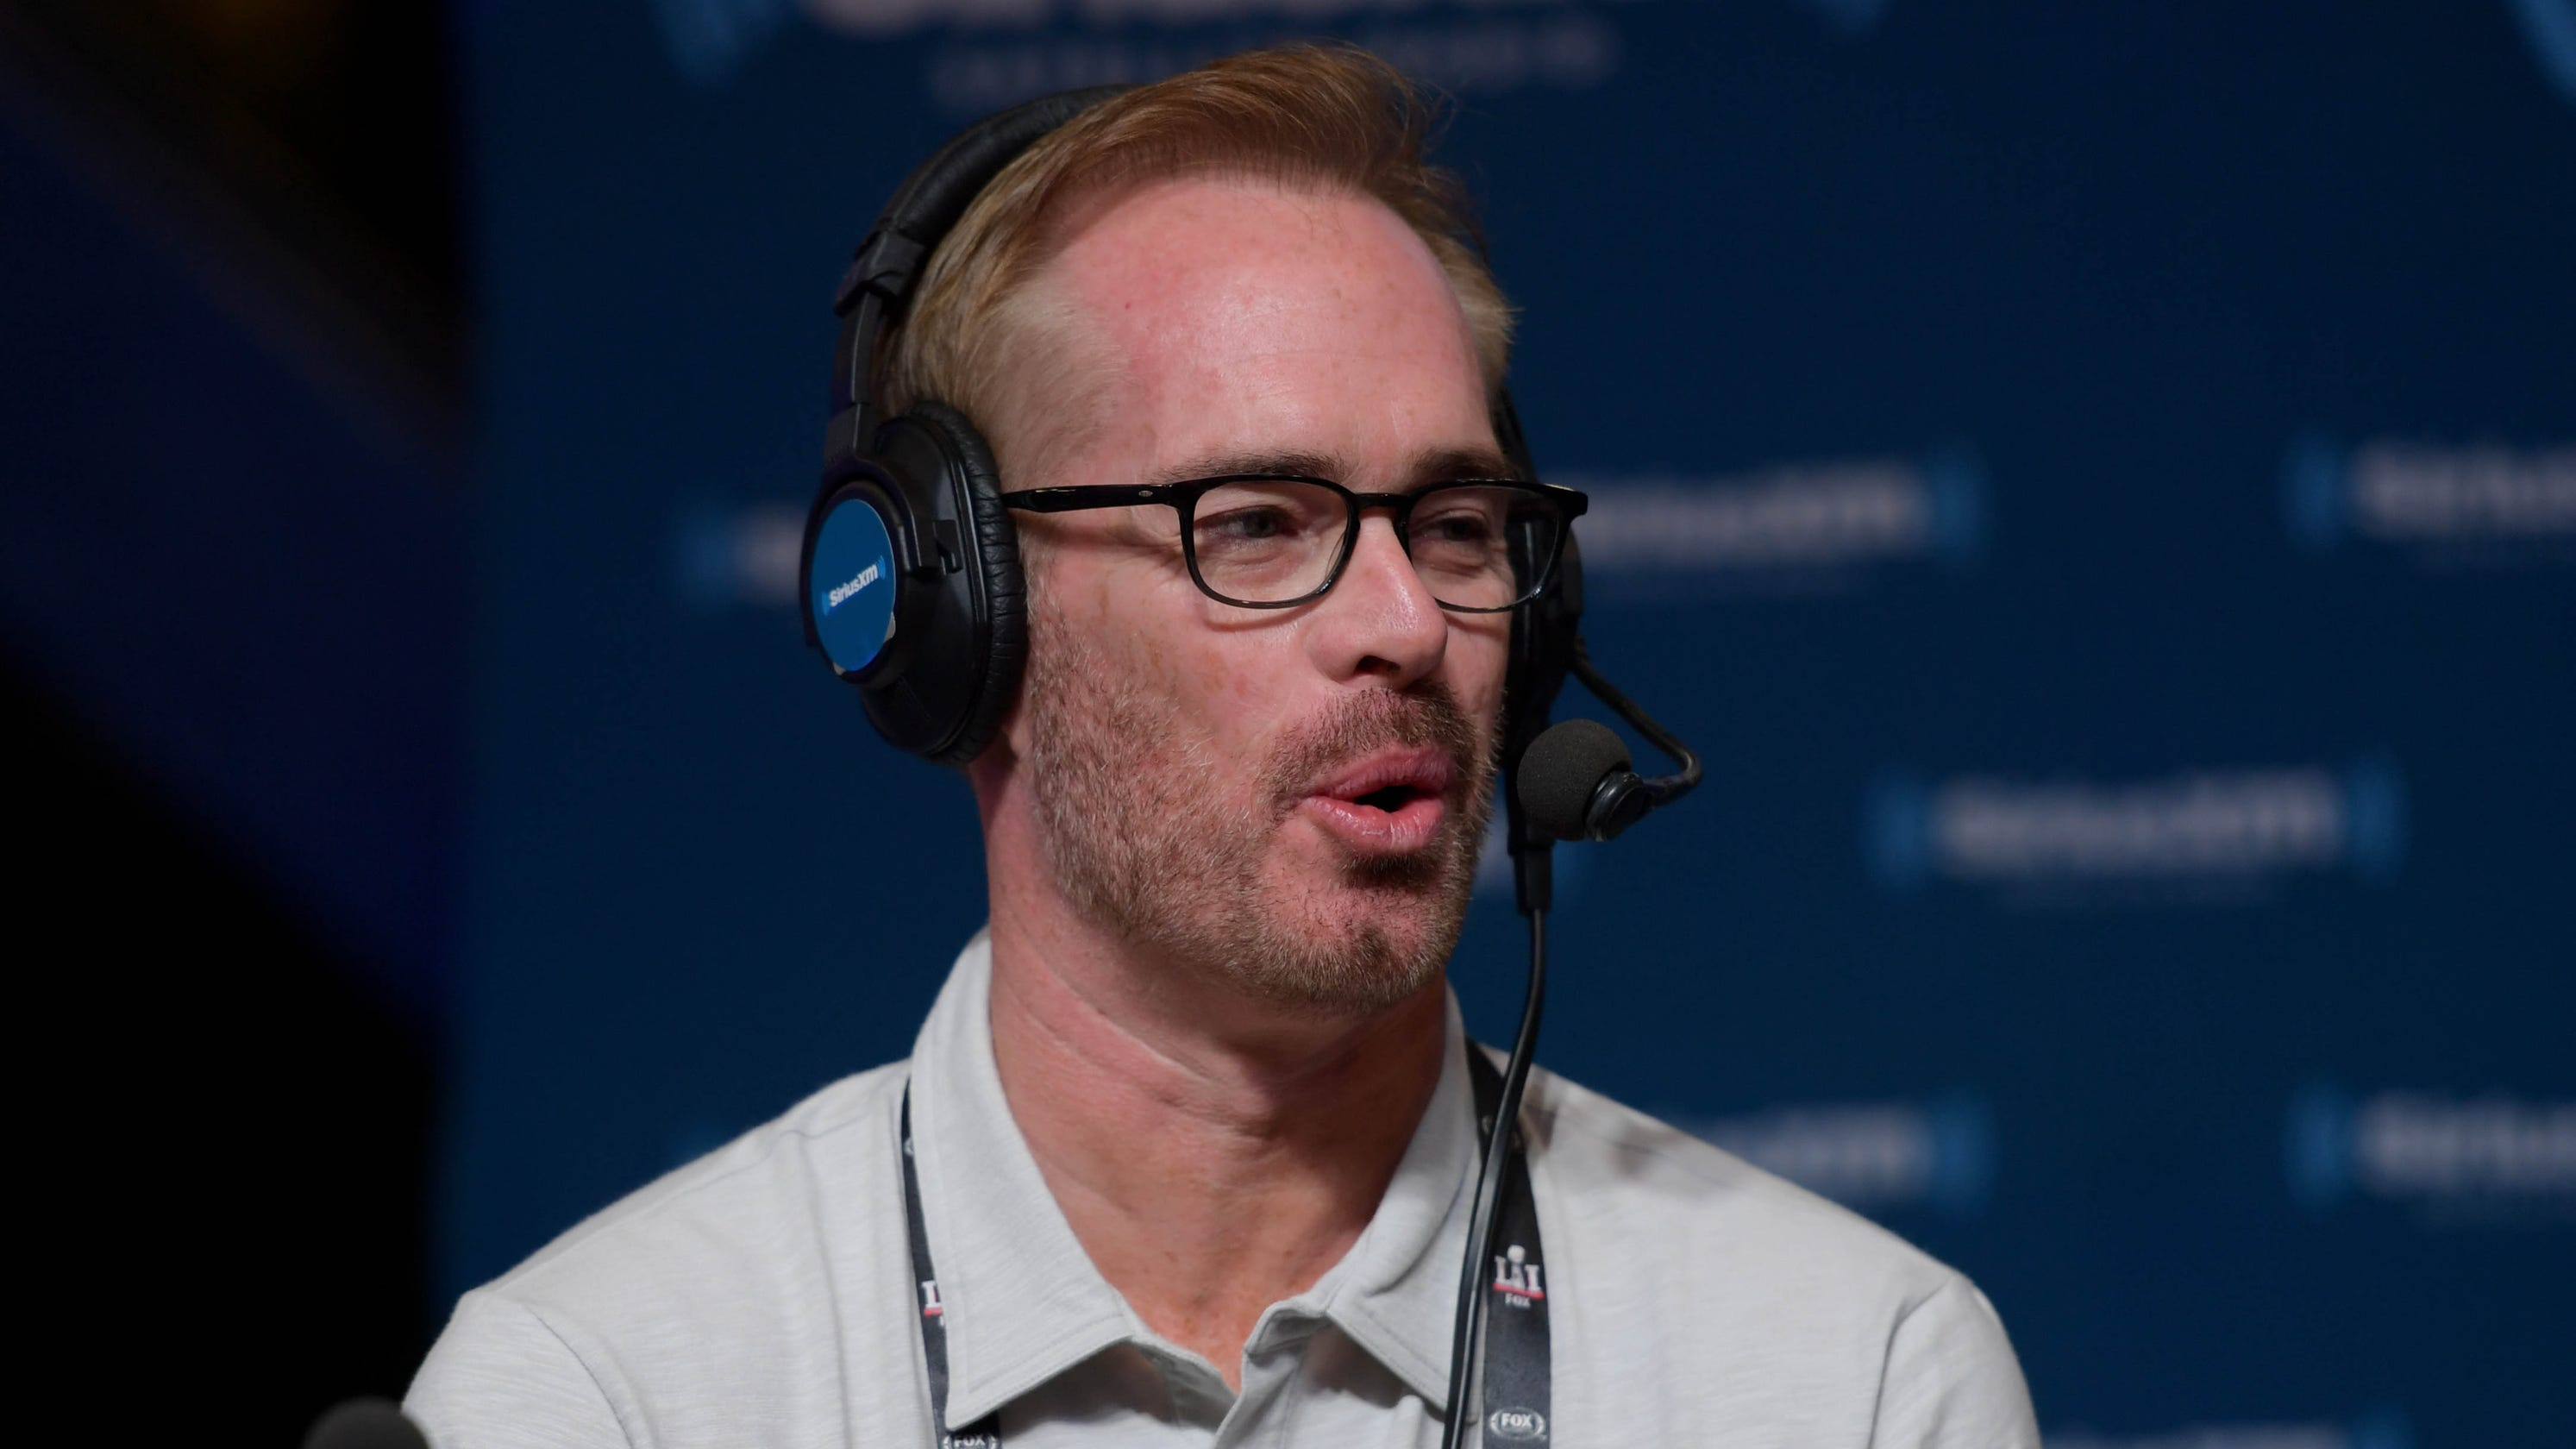 Joe Buck: If NFL games don't have spectators, Fox might add CGI fans, crowd noise to broadcasts